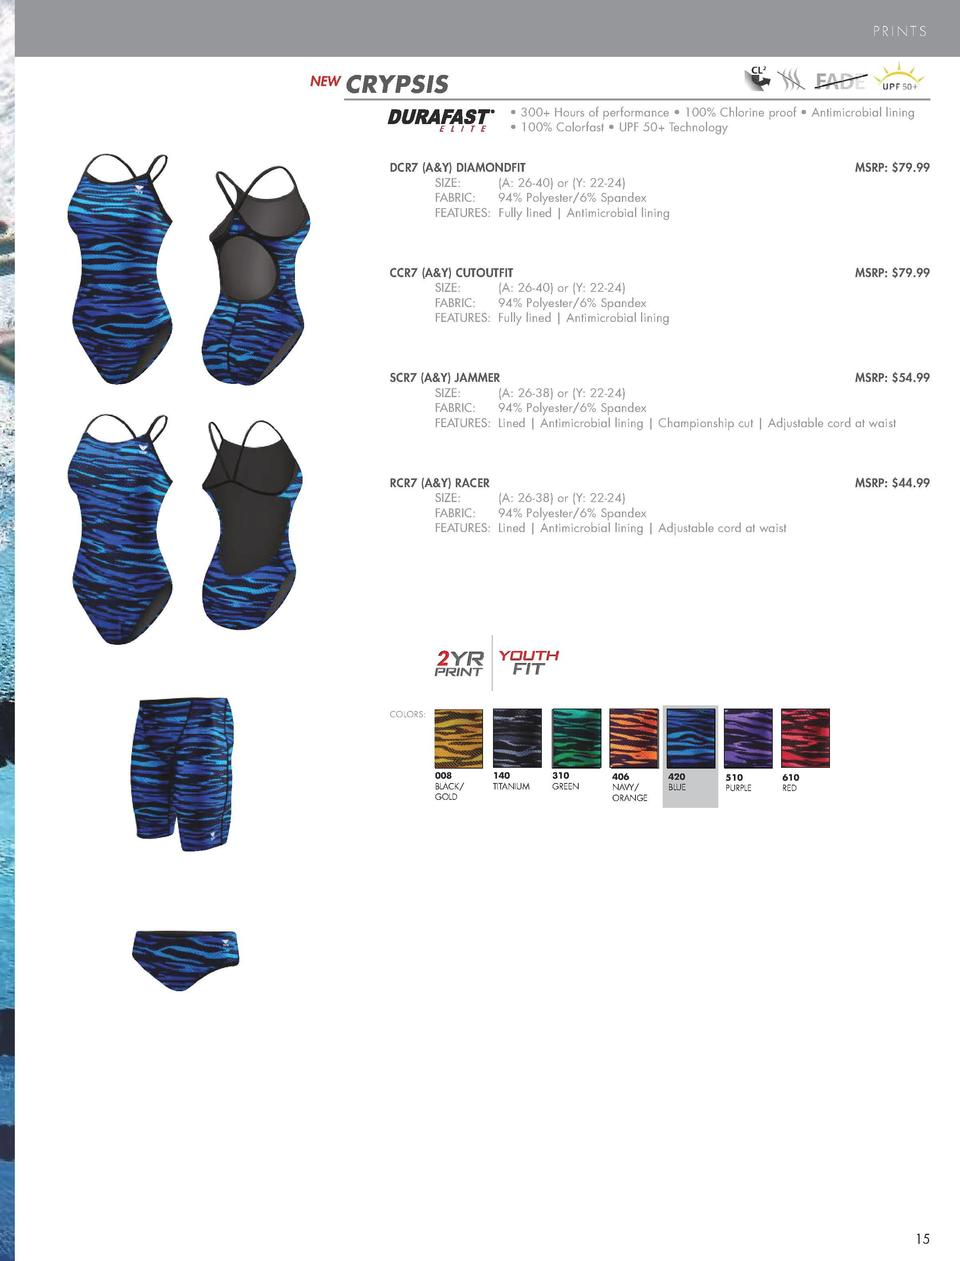 PERFORMANCE SWIM  PRINTS  NEW  CRYPSIS     300  Hours of performance     100  Chlorine proof     Antimicrobial lining     ...